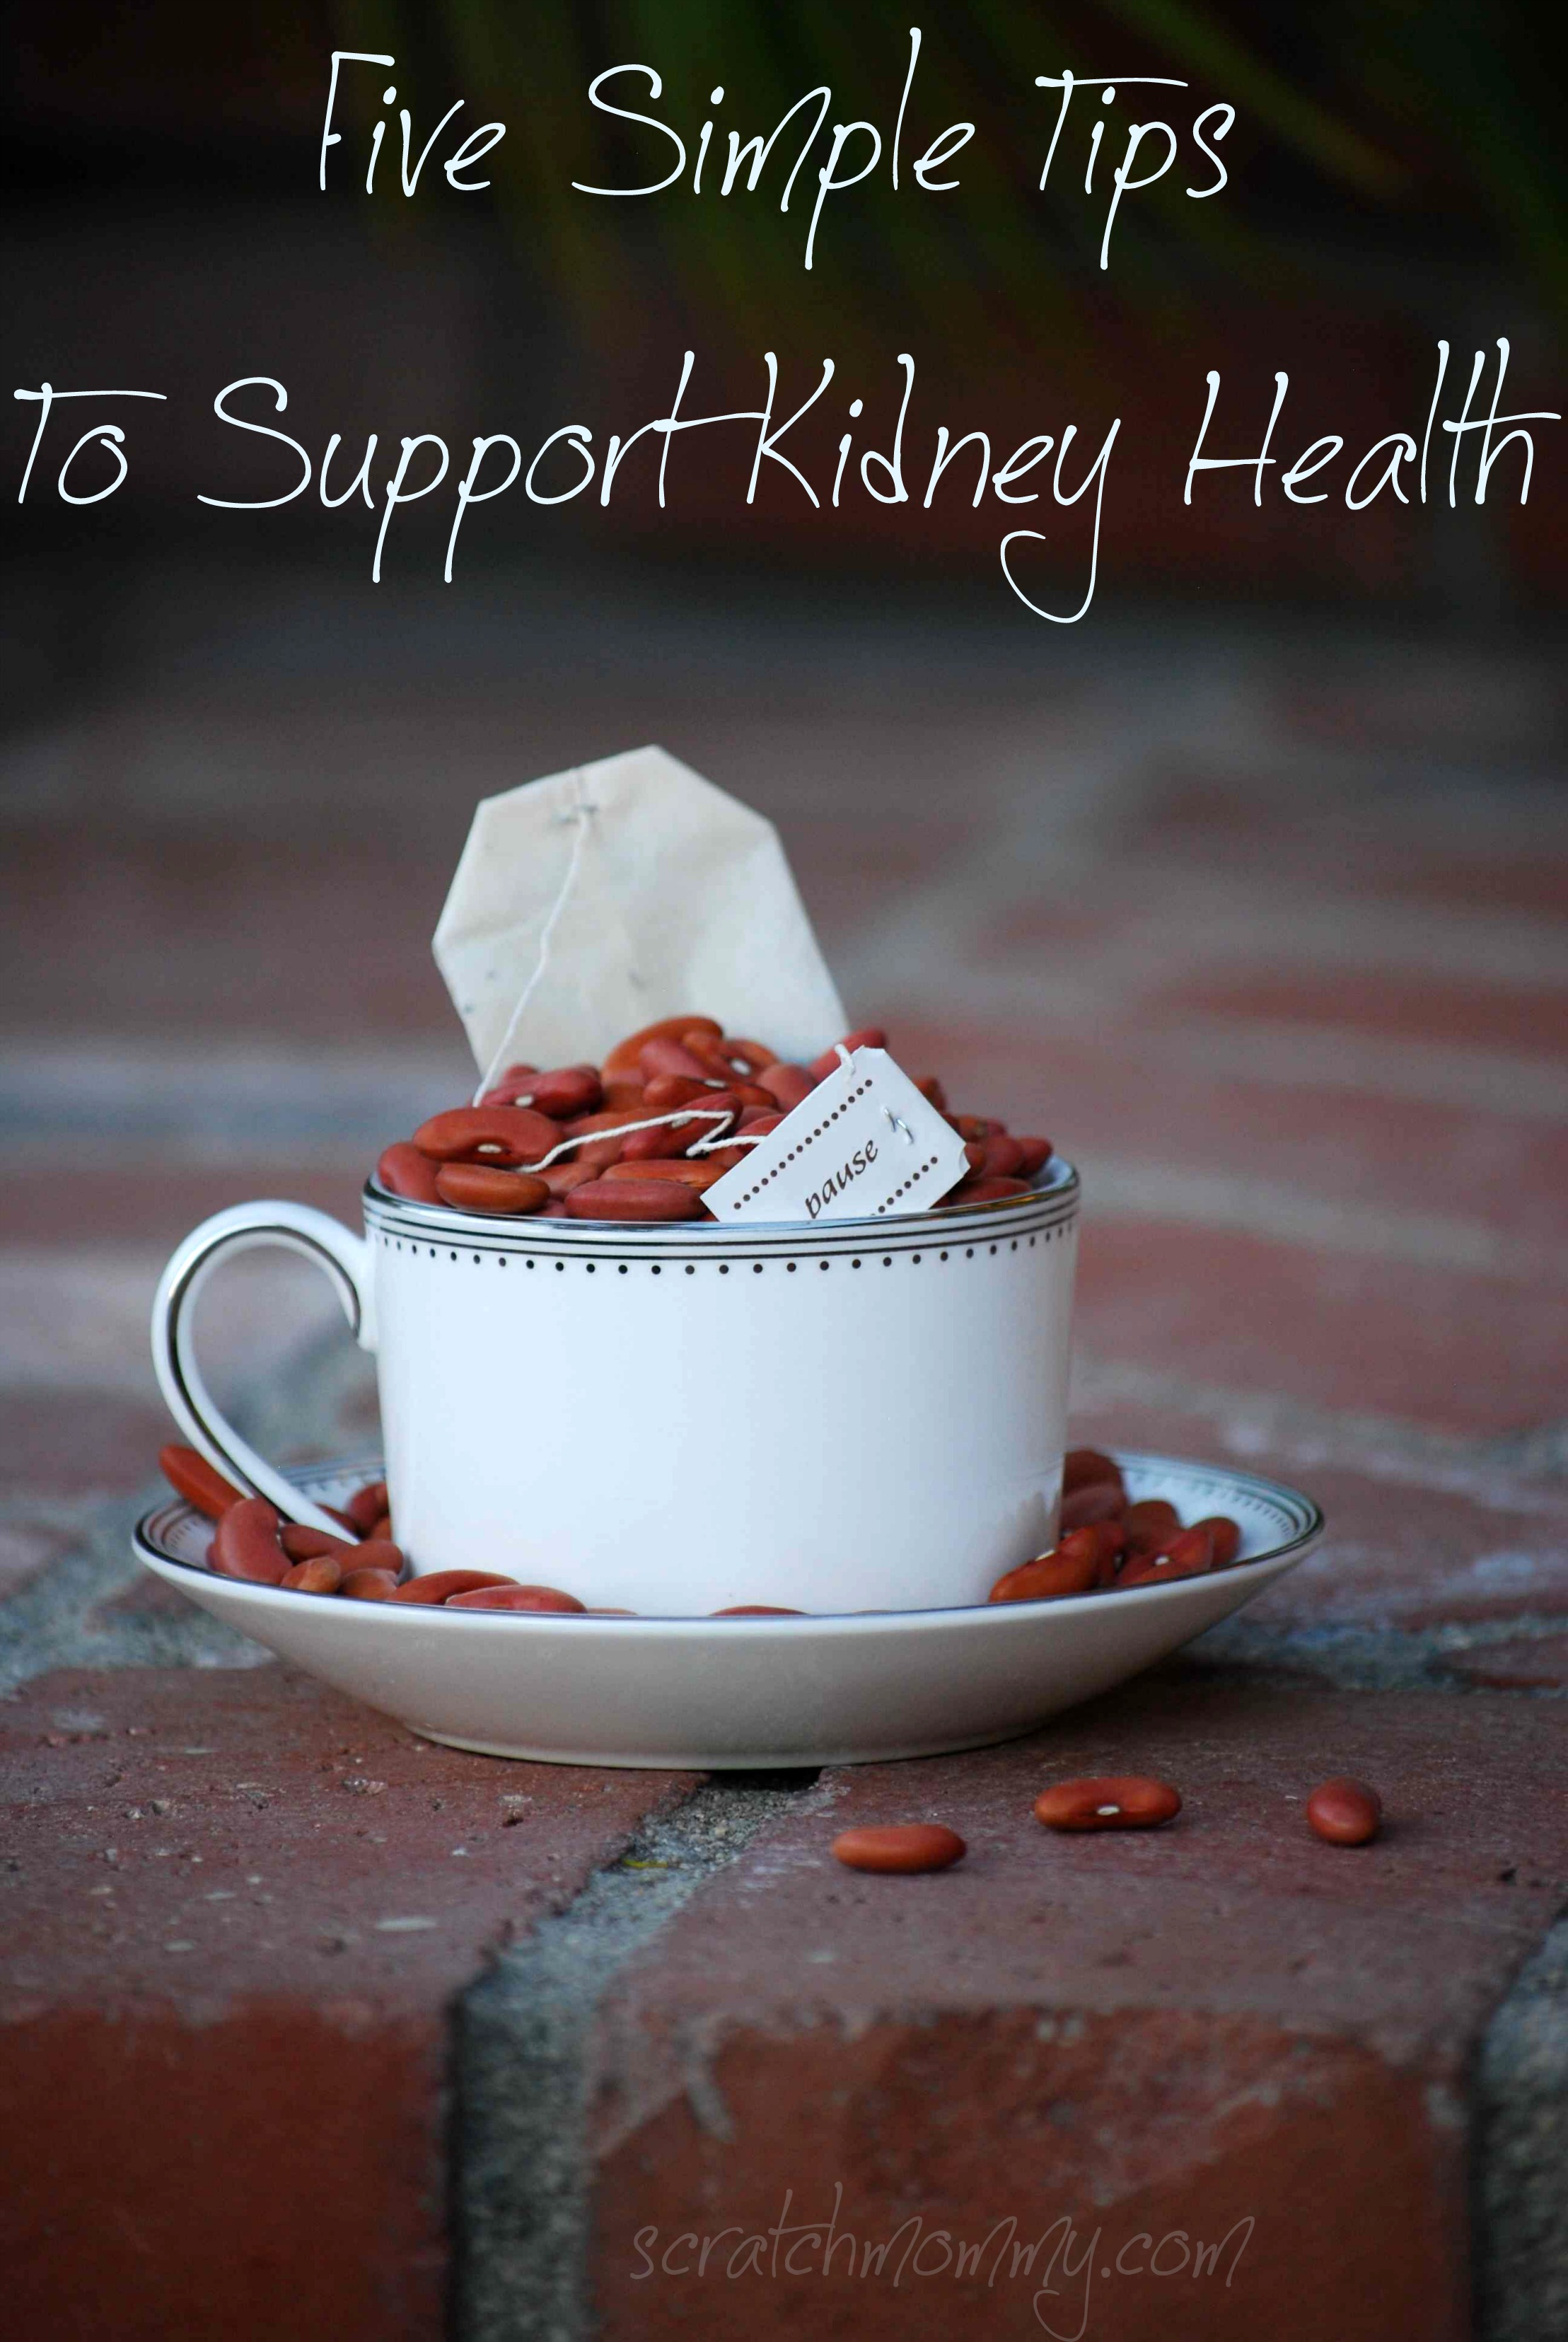 5 tips for kidney health a dandelion smoothie recipe the following ideas are just a few avenues weve adopted in our family to not only take care of our overall health but specifically kidney health forumfinder Images